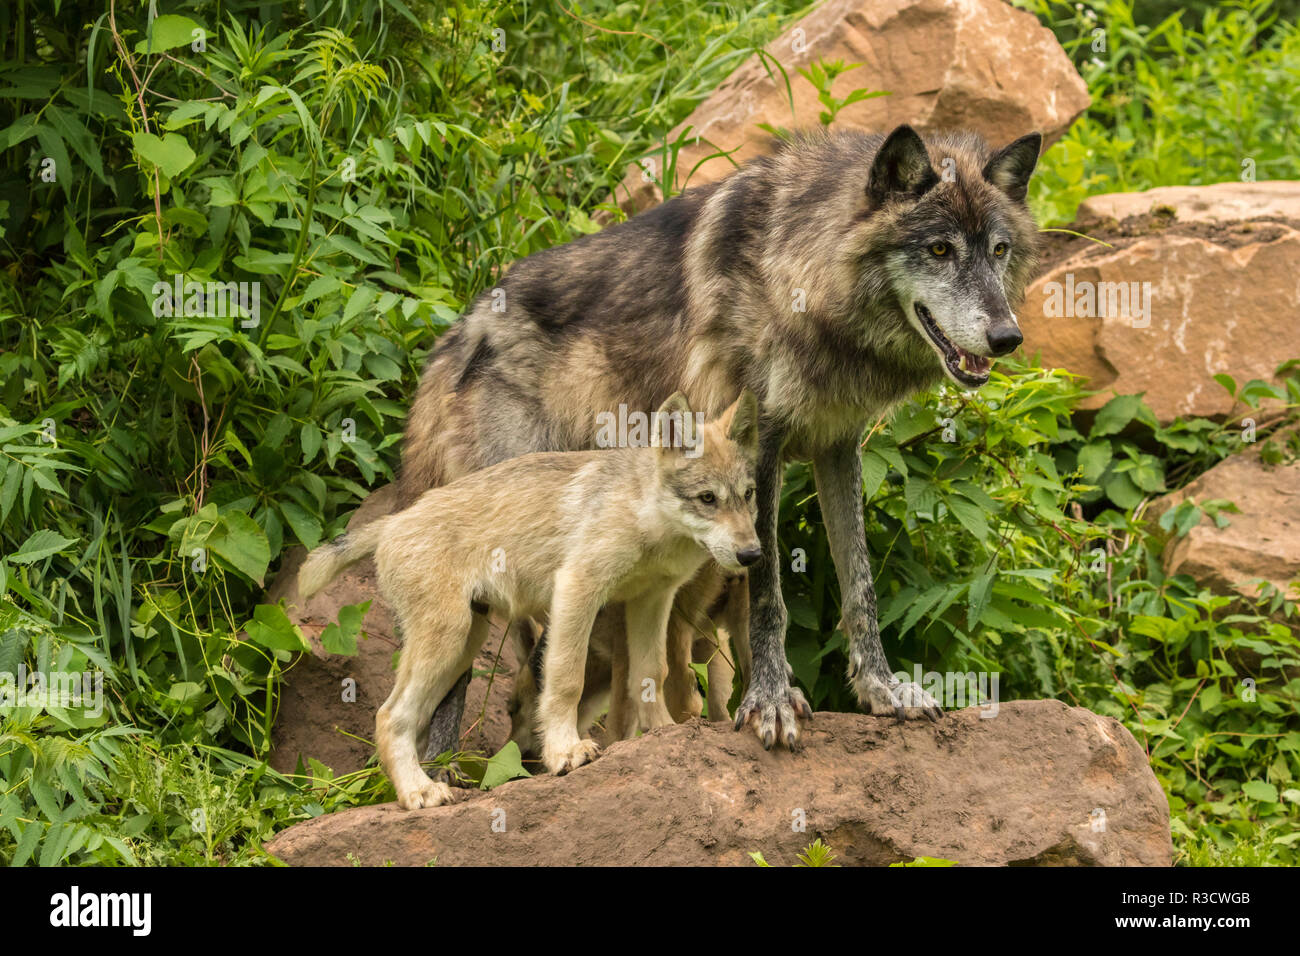 USA, Minnesota, Minnesota Wildlife Connection. Captive gray wolf adult and pups. - Stock Image